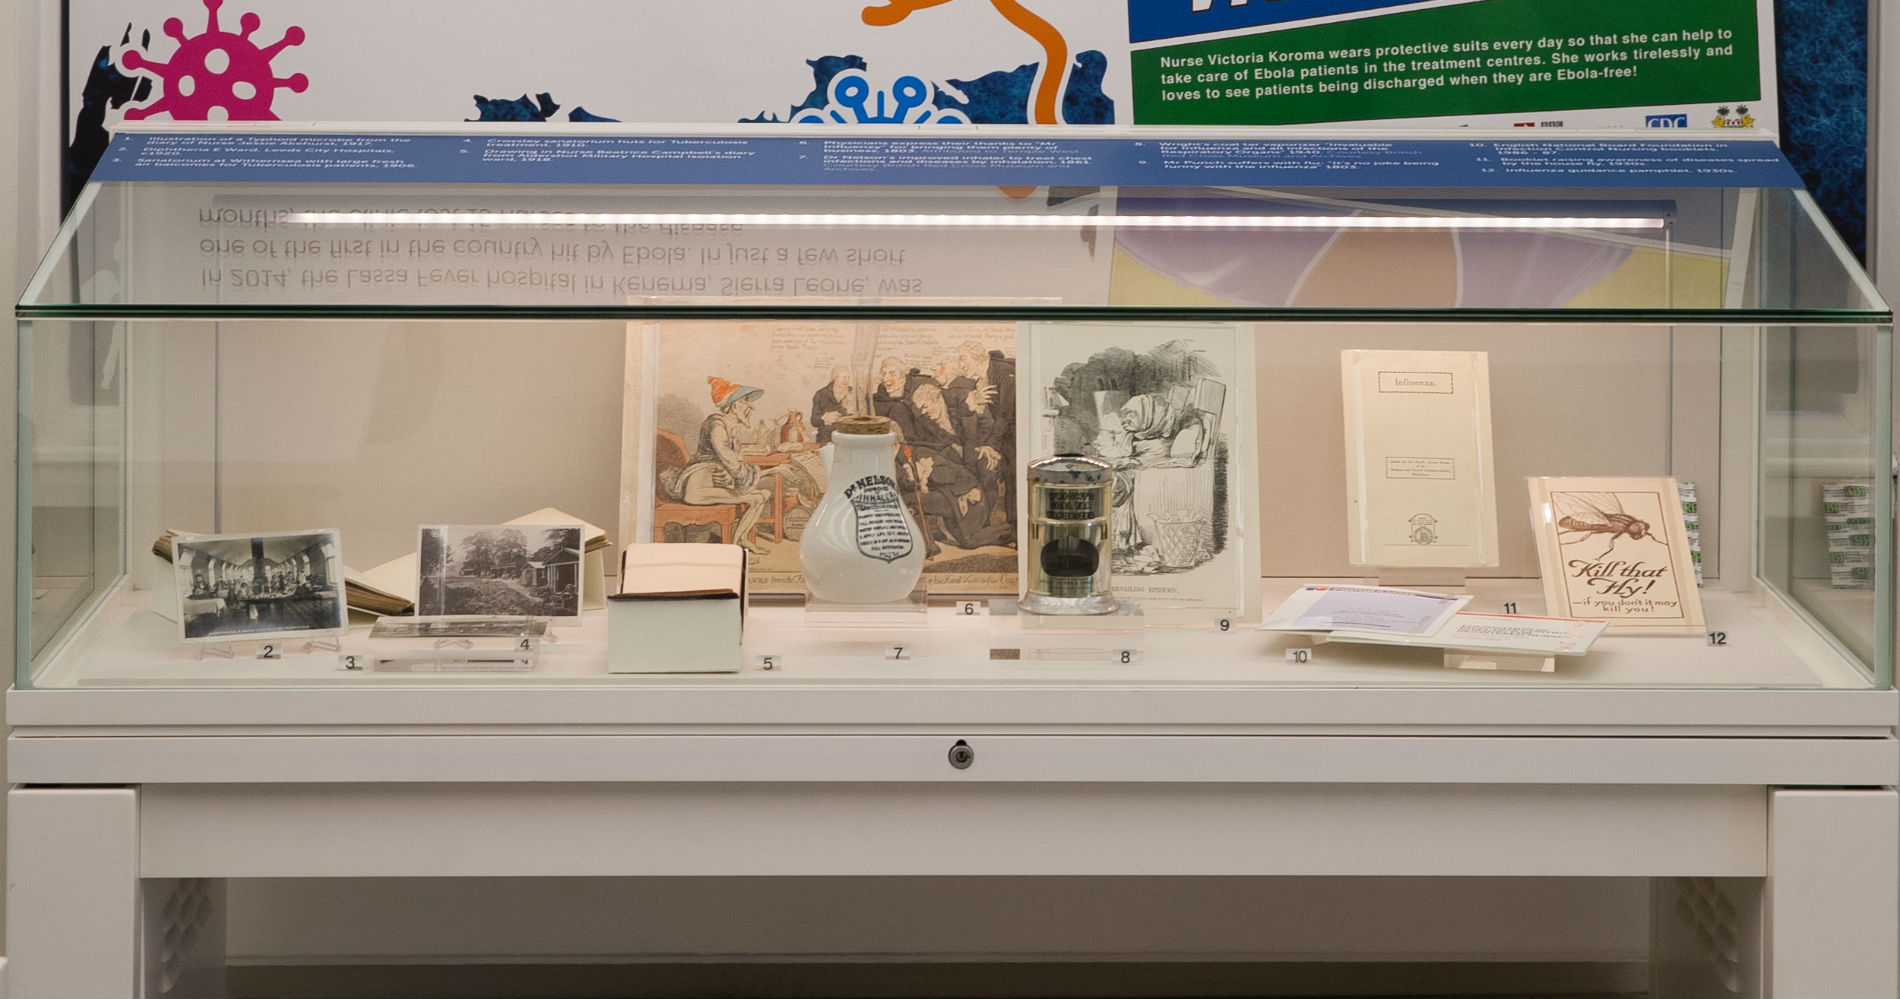 Pandemic exhibition case objects